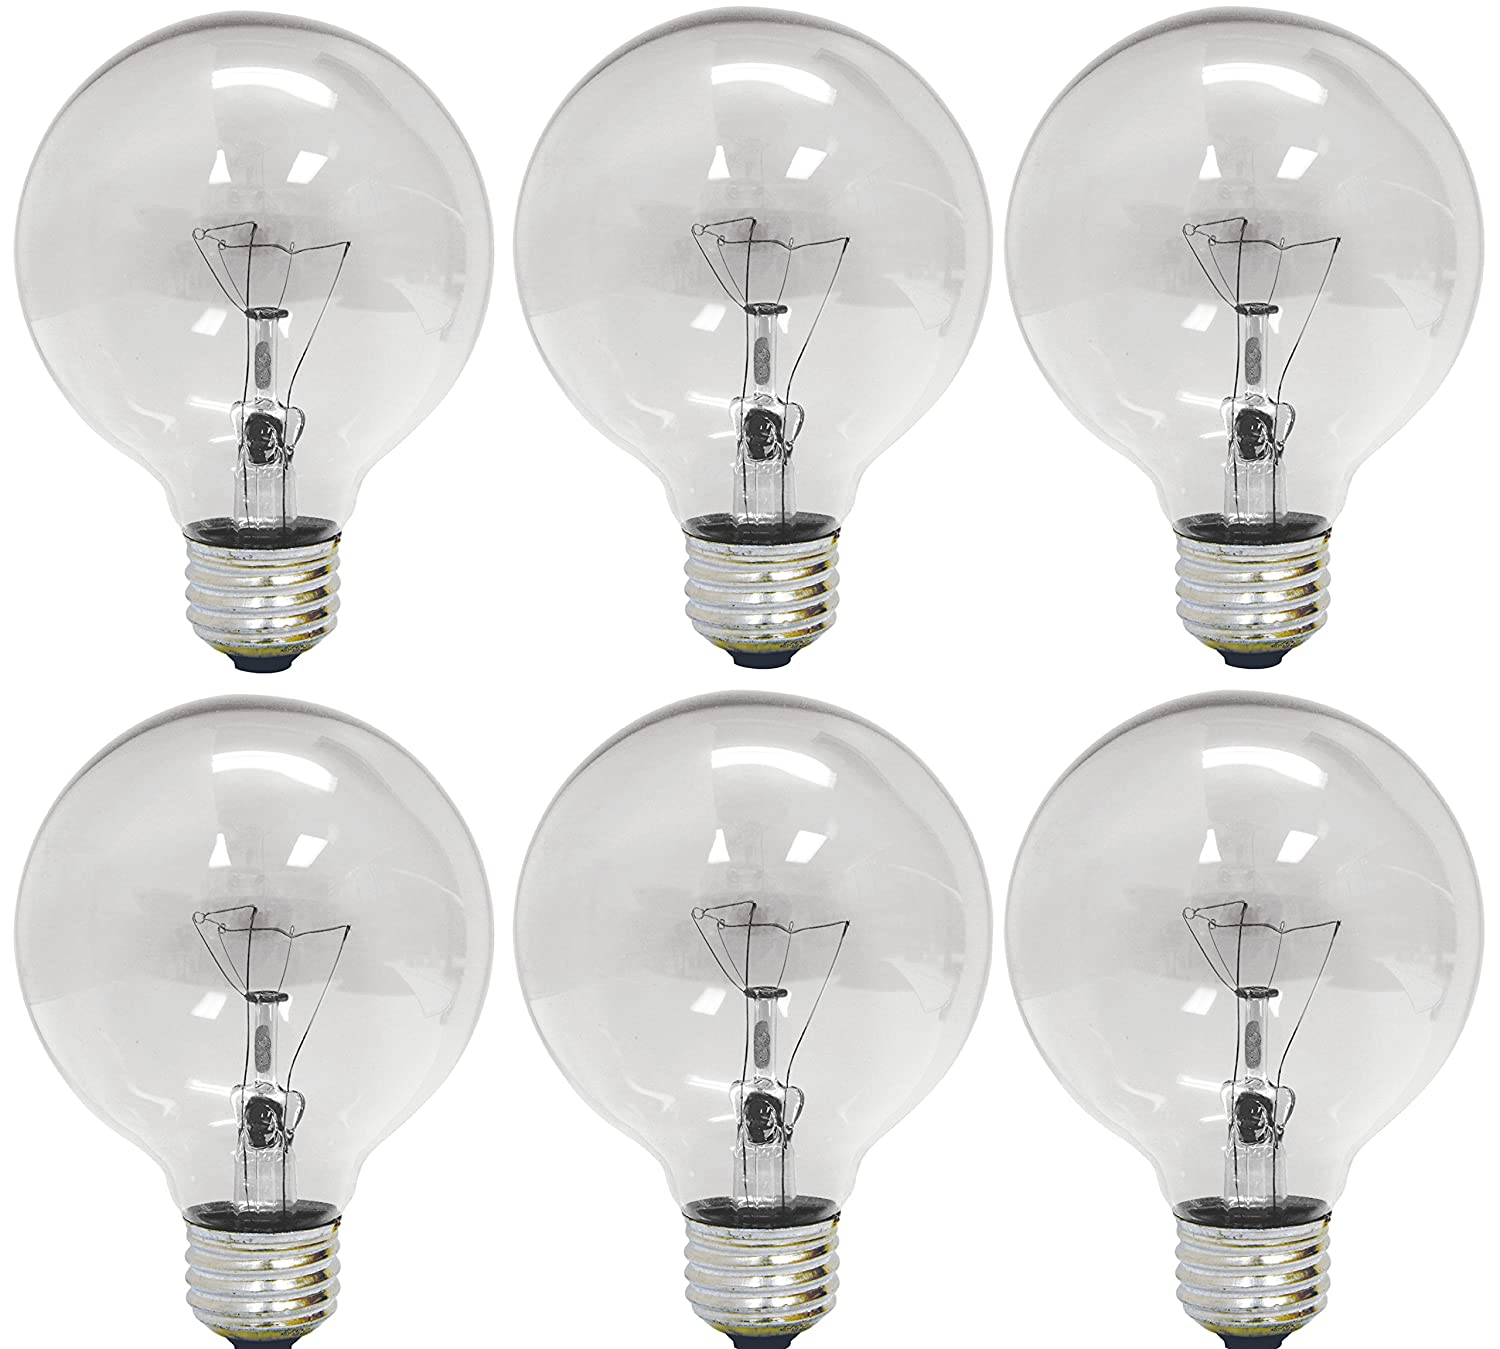 GE Lighting 12980 40-Watt 410-Lumen G25 Globe Light Bulbs, Crystal ...